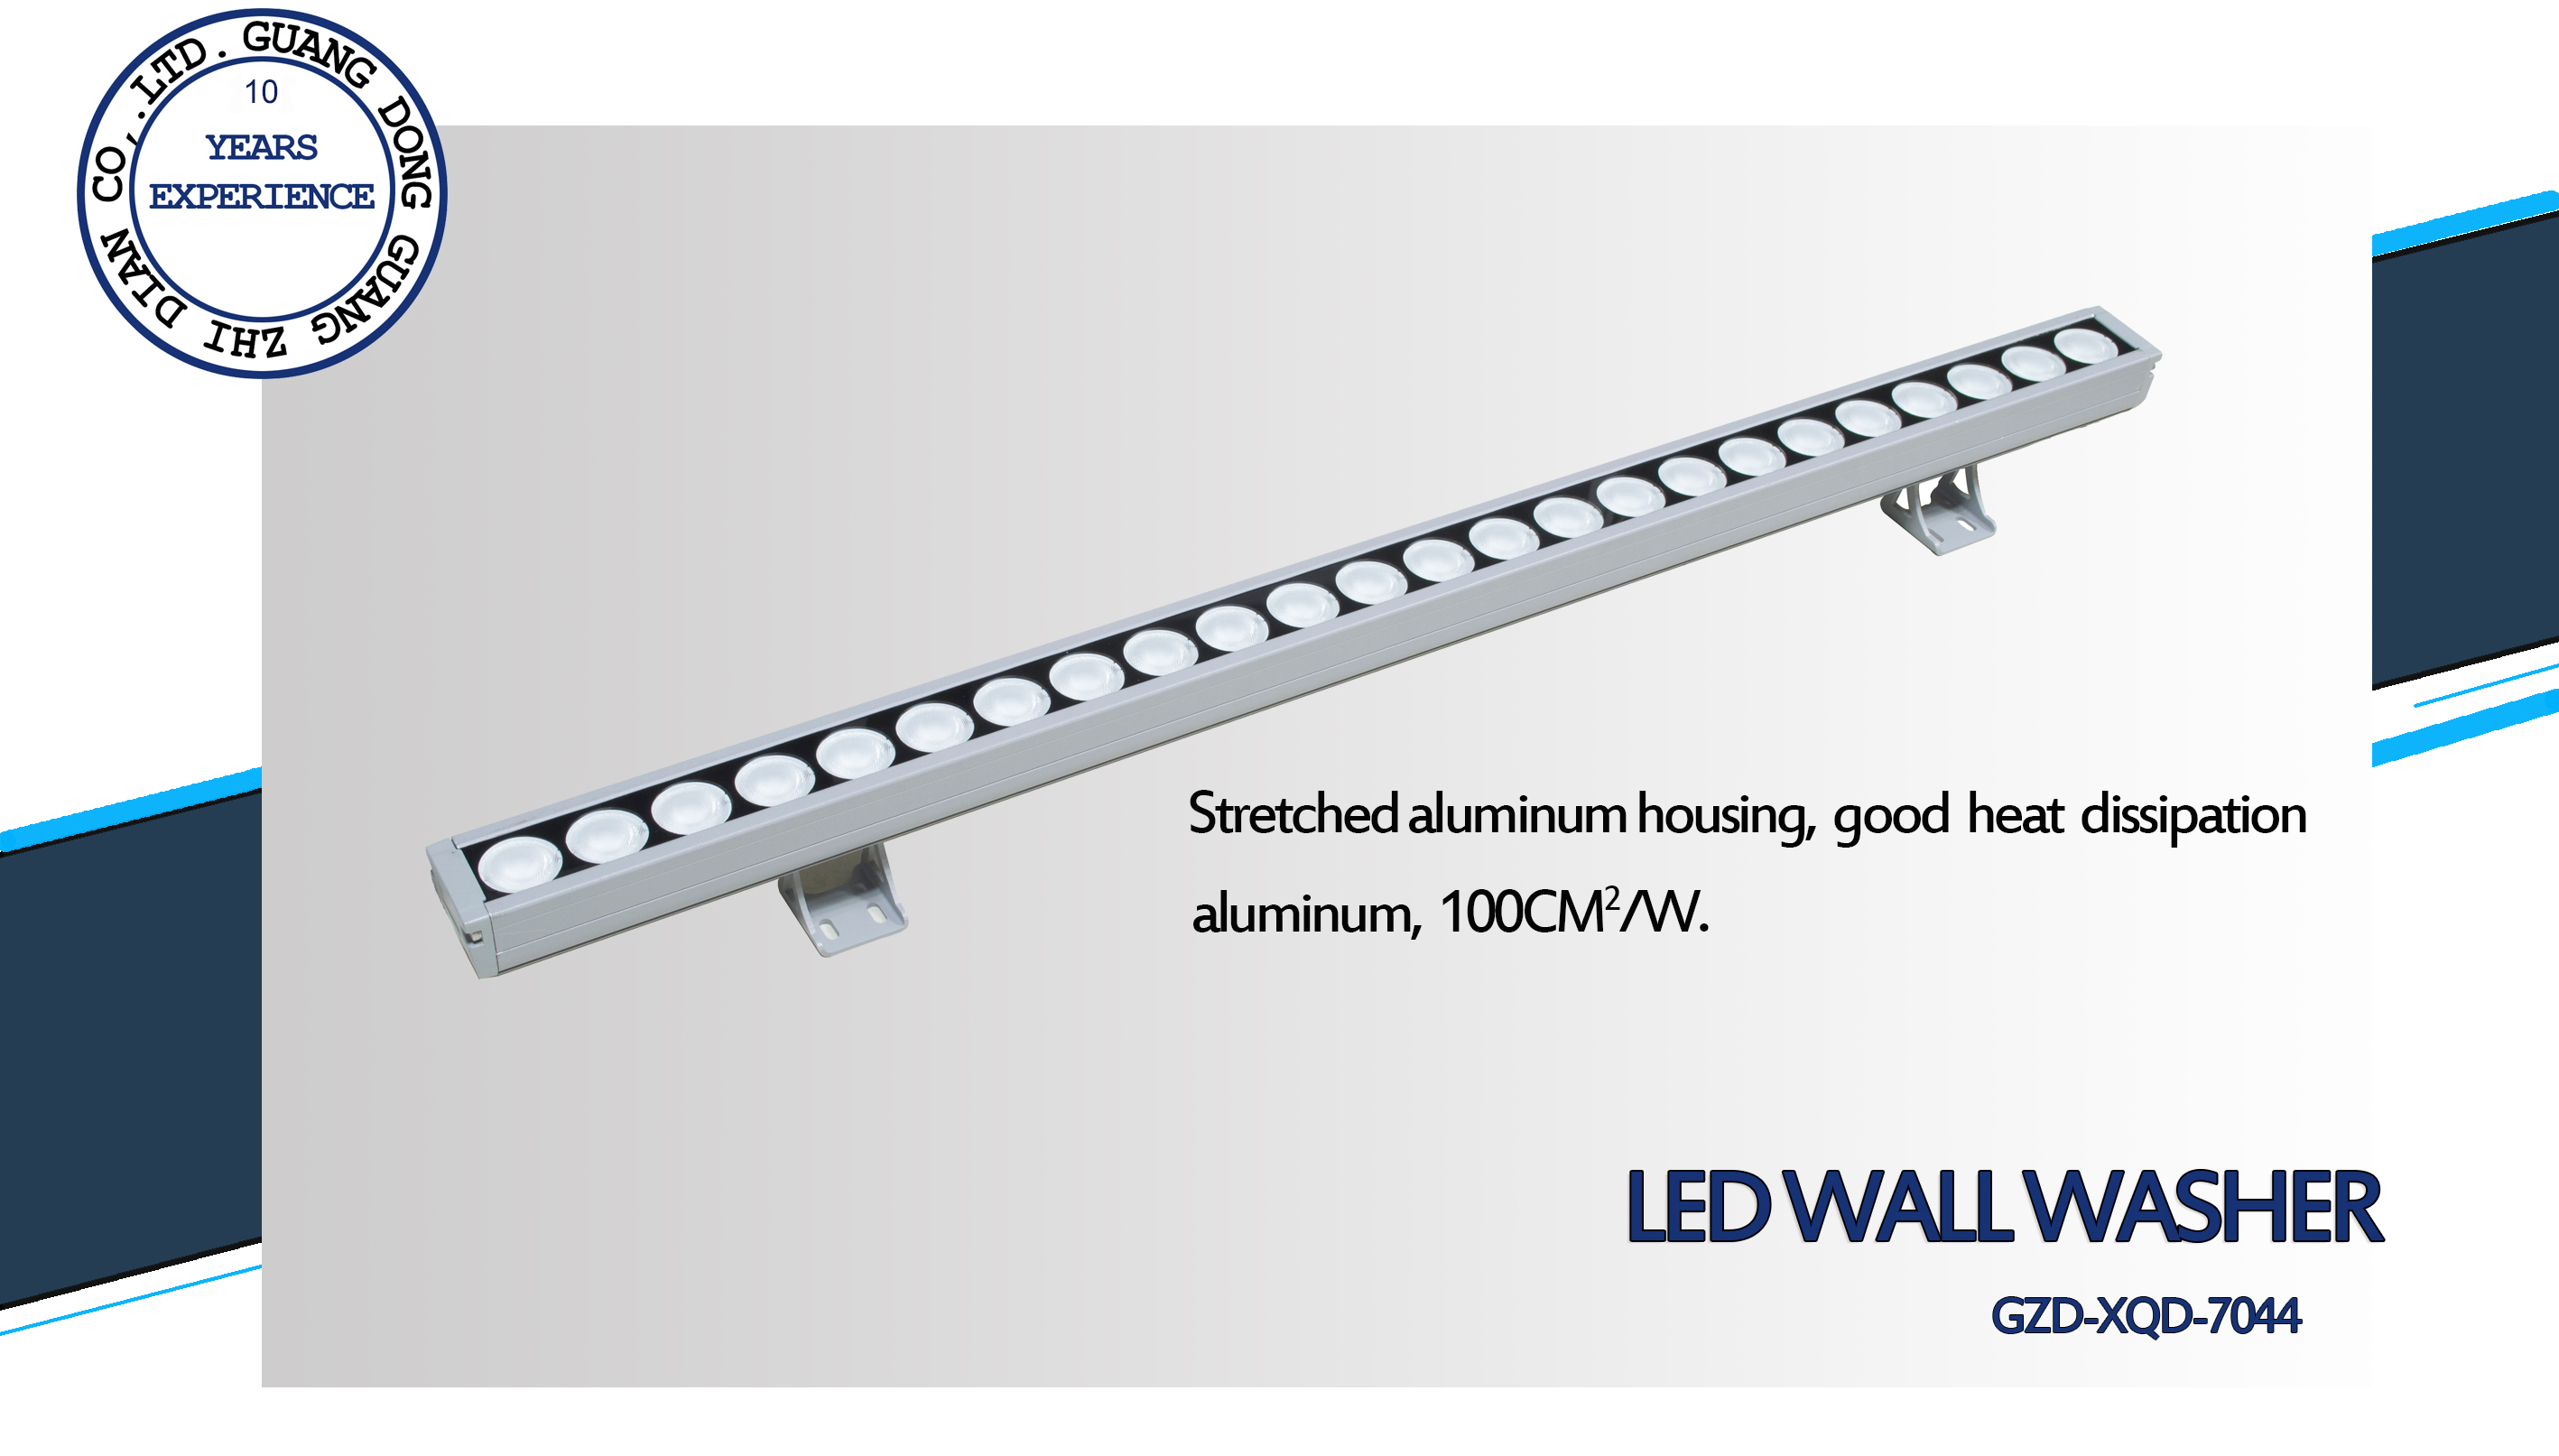 1 led wall washer-